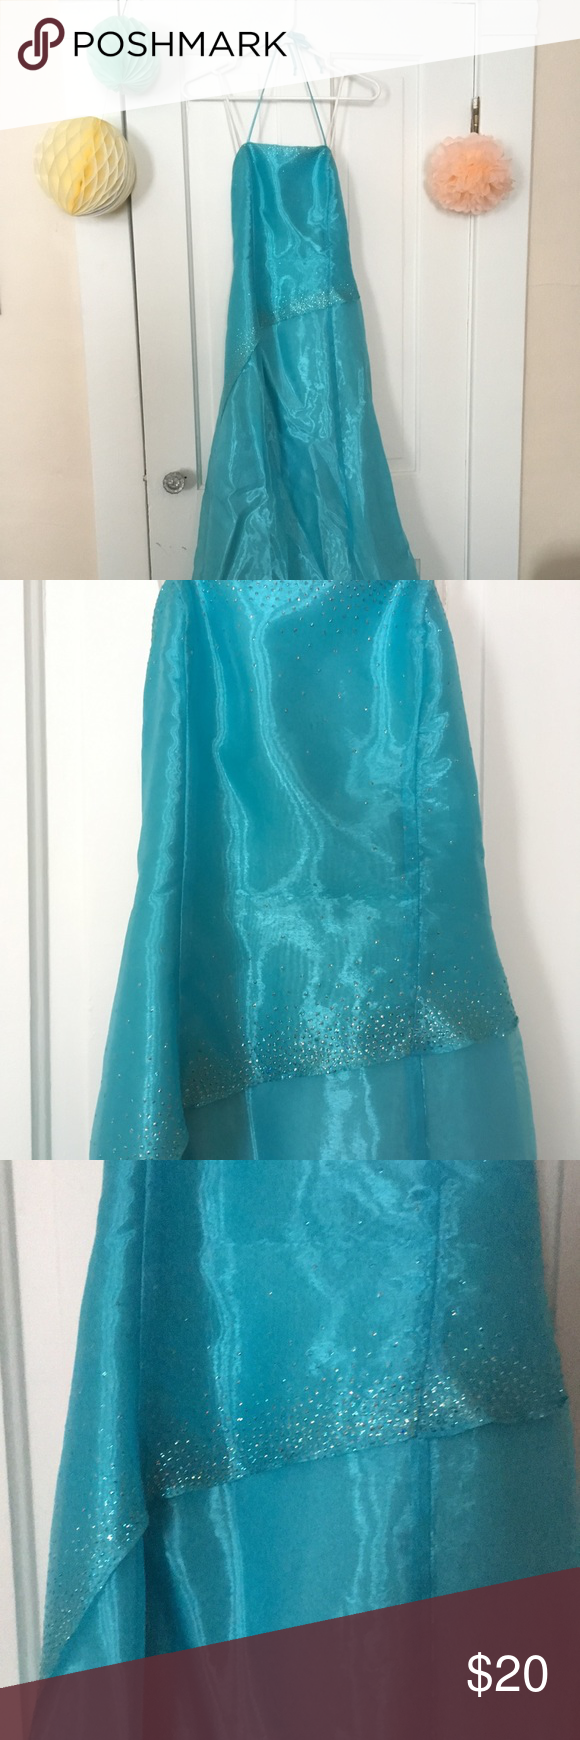 Prom dress-size small (used) | Shearing, Dress prom and Teal